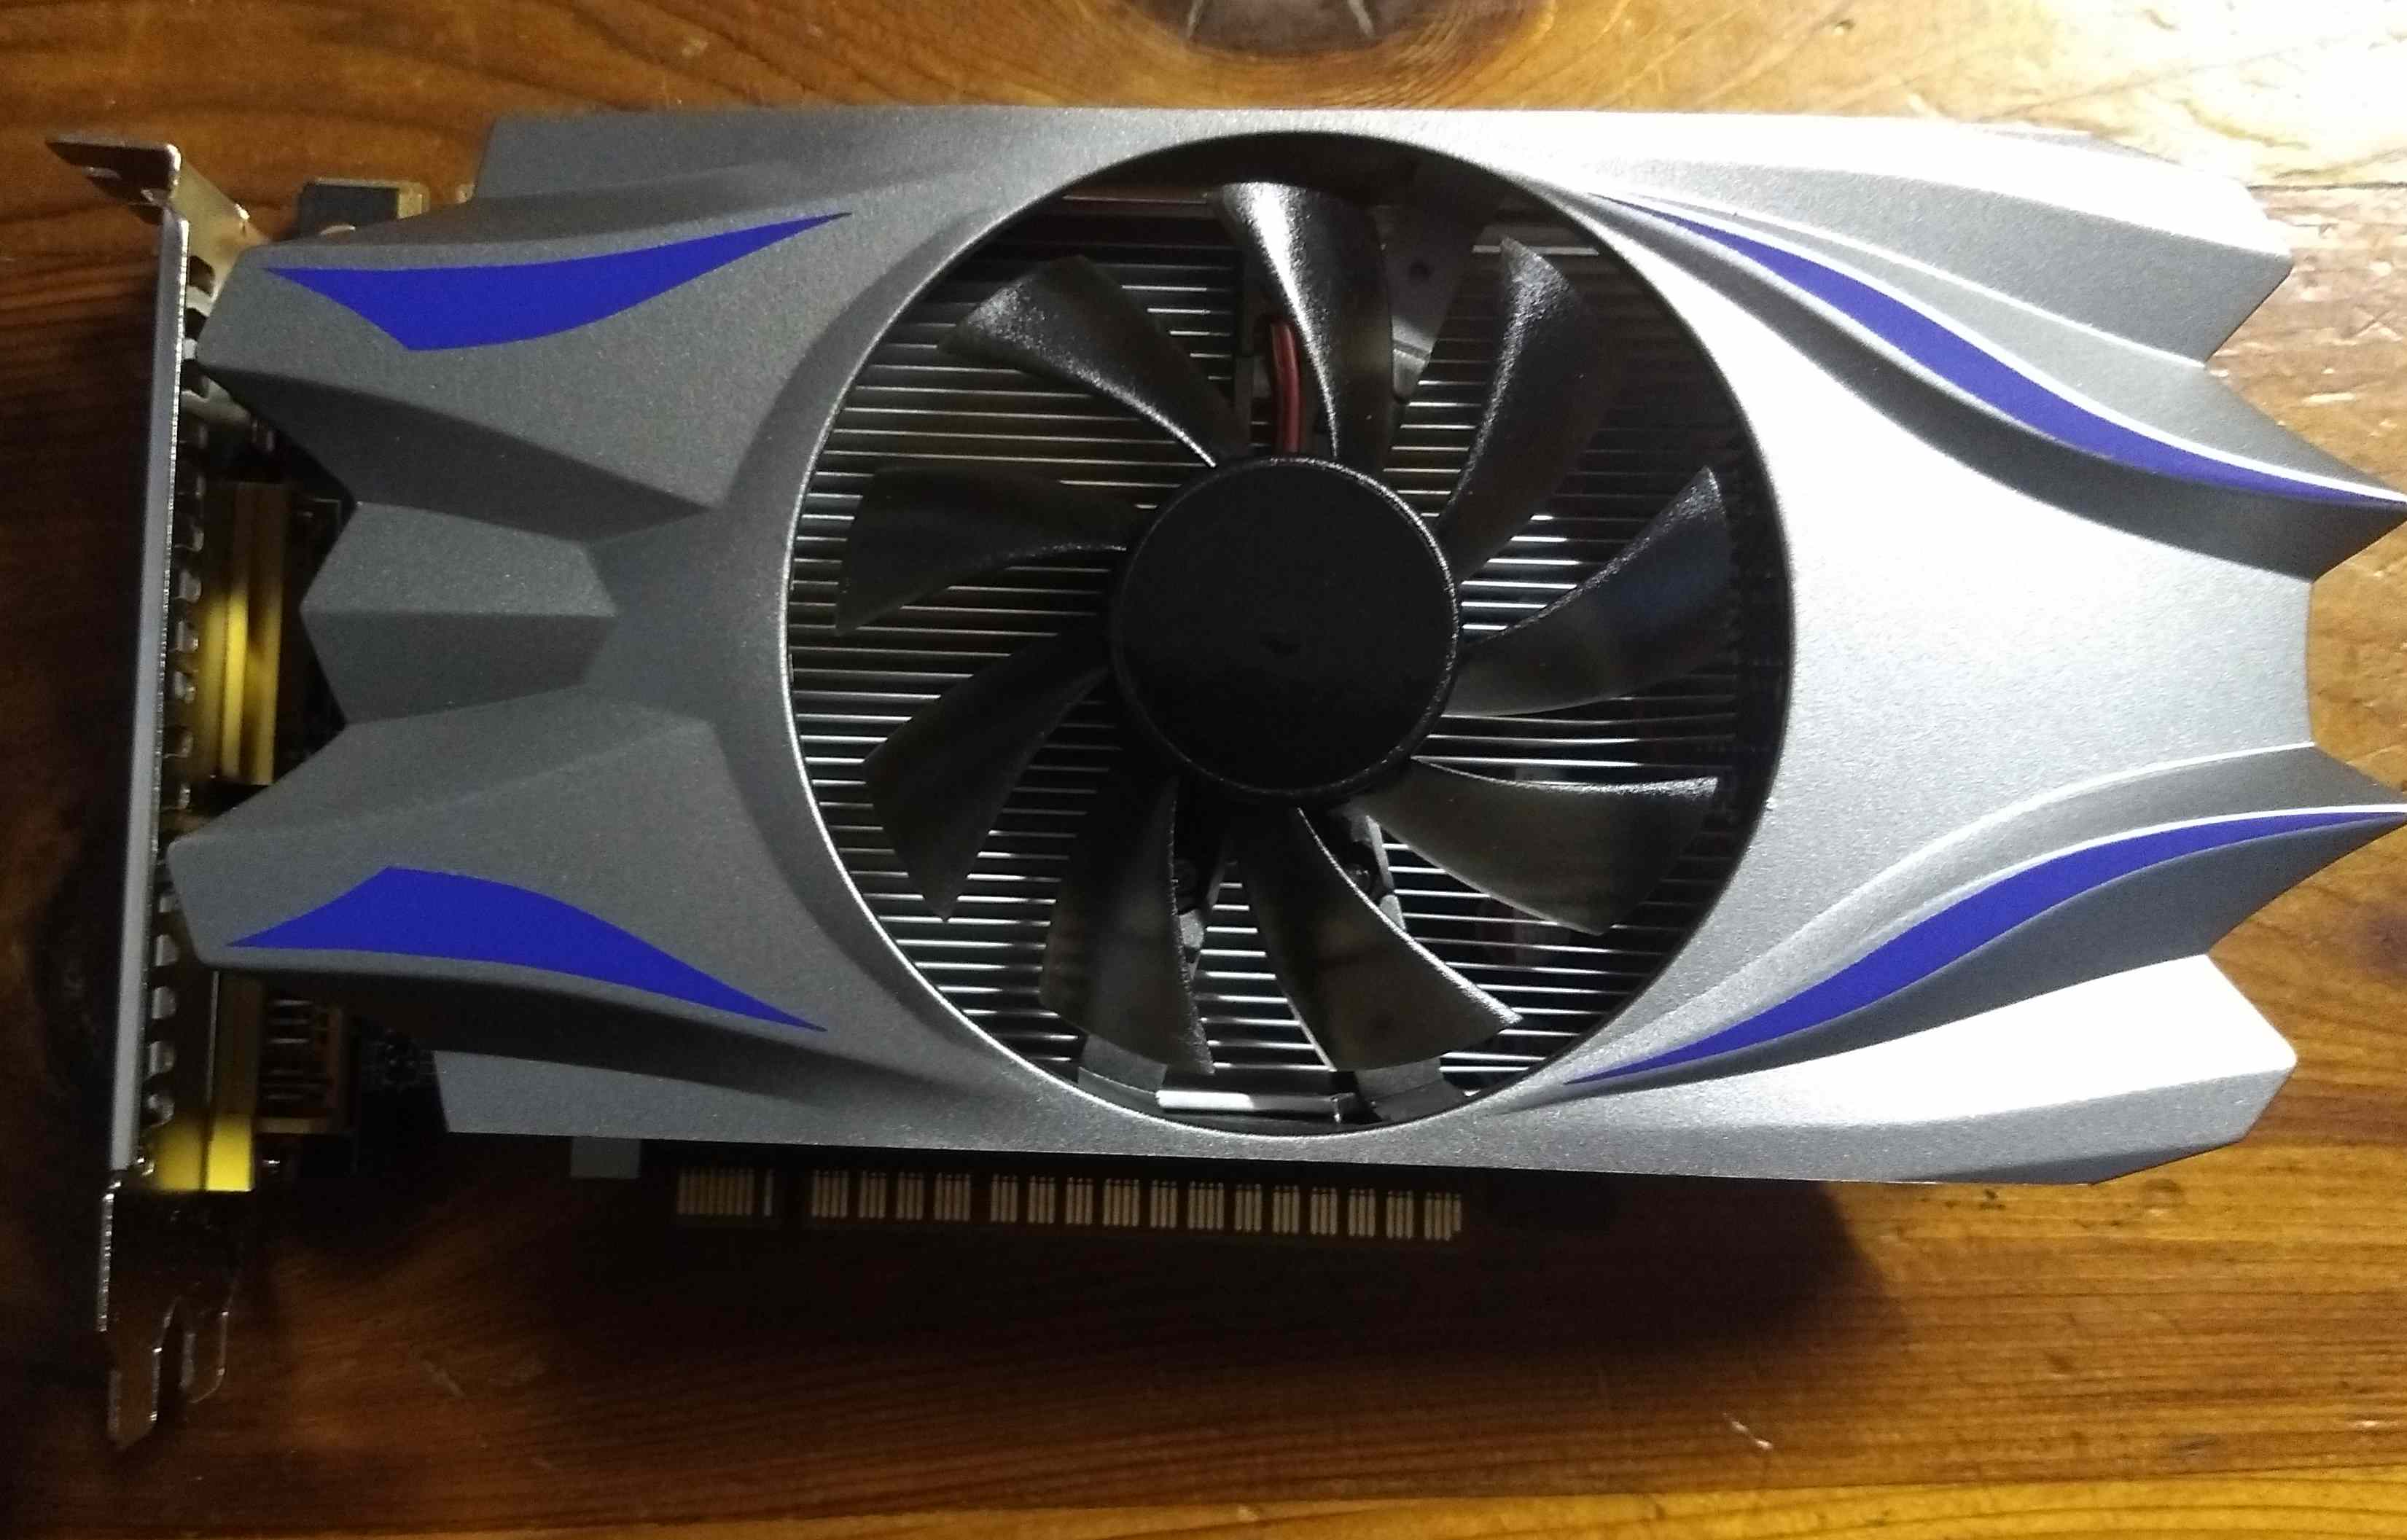 Fake gtx 750ti - can't find compatible bios - Graphics Cards